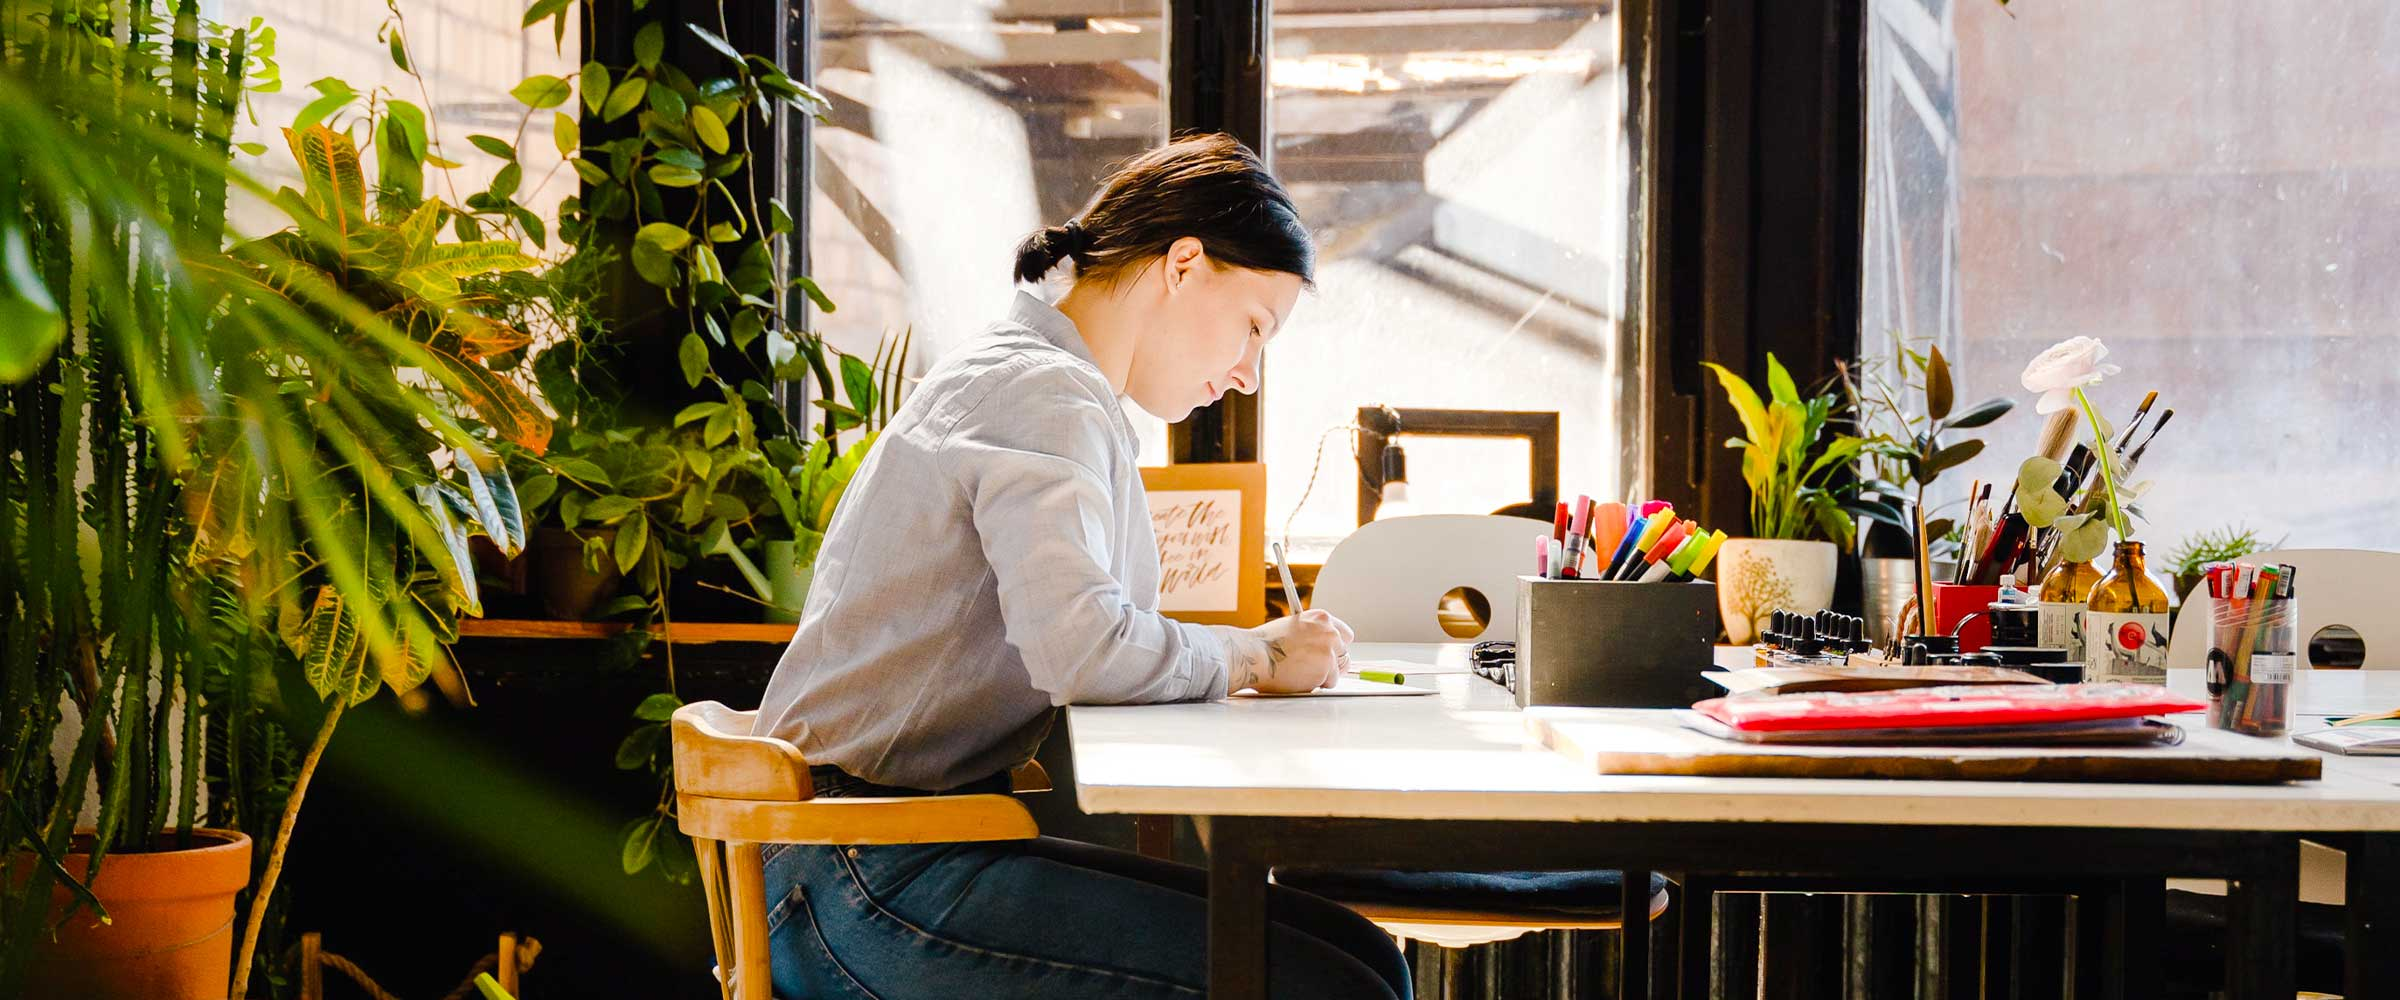 Woman sitting at desk, focusing on working, surrounded by plants.